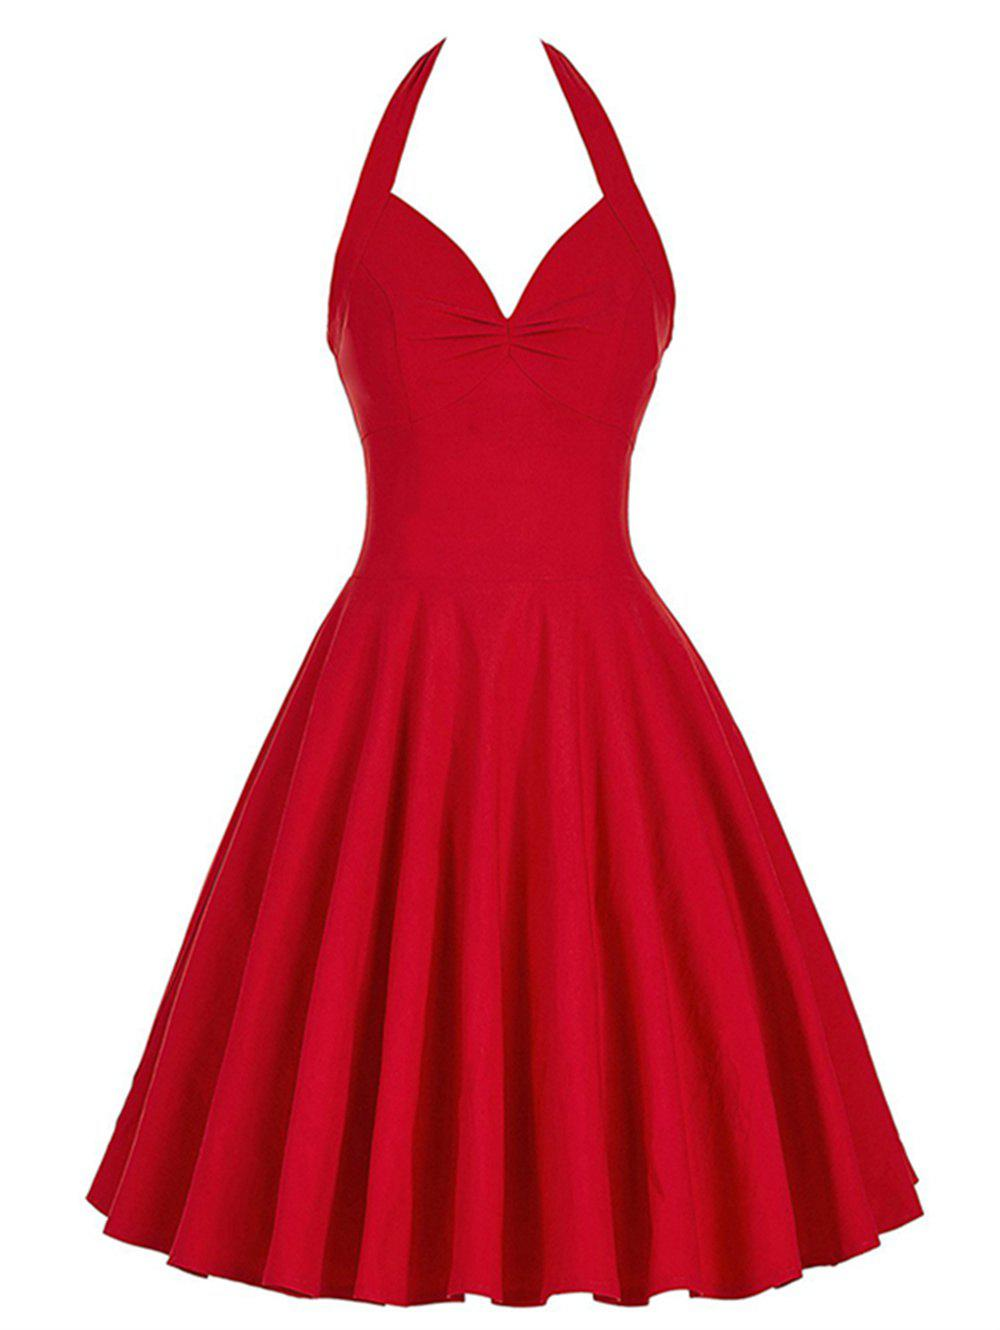 Lace-Up Halter Corset Dress - RED L